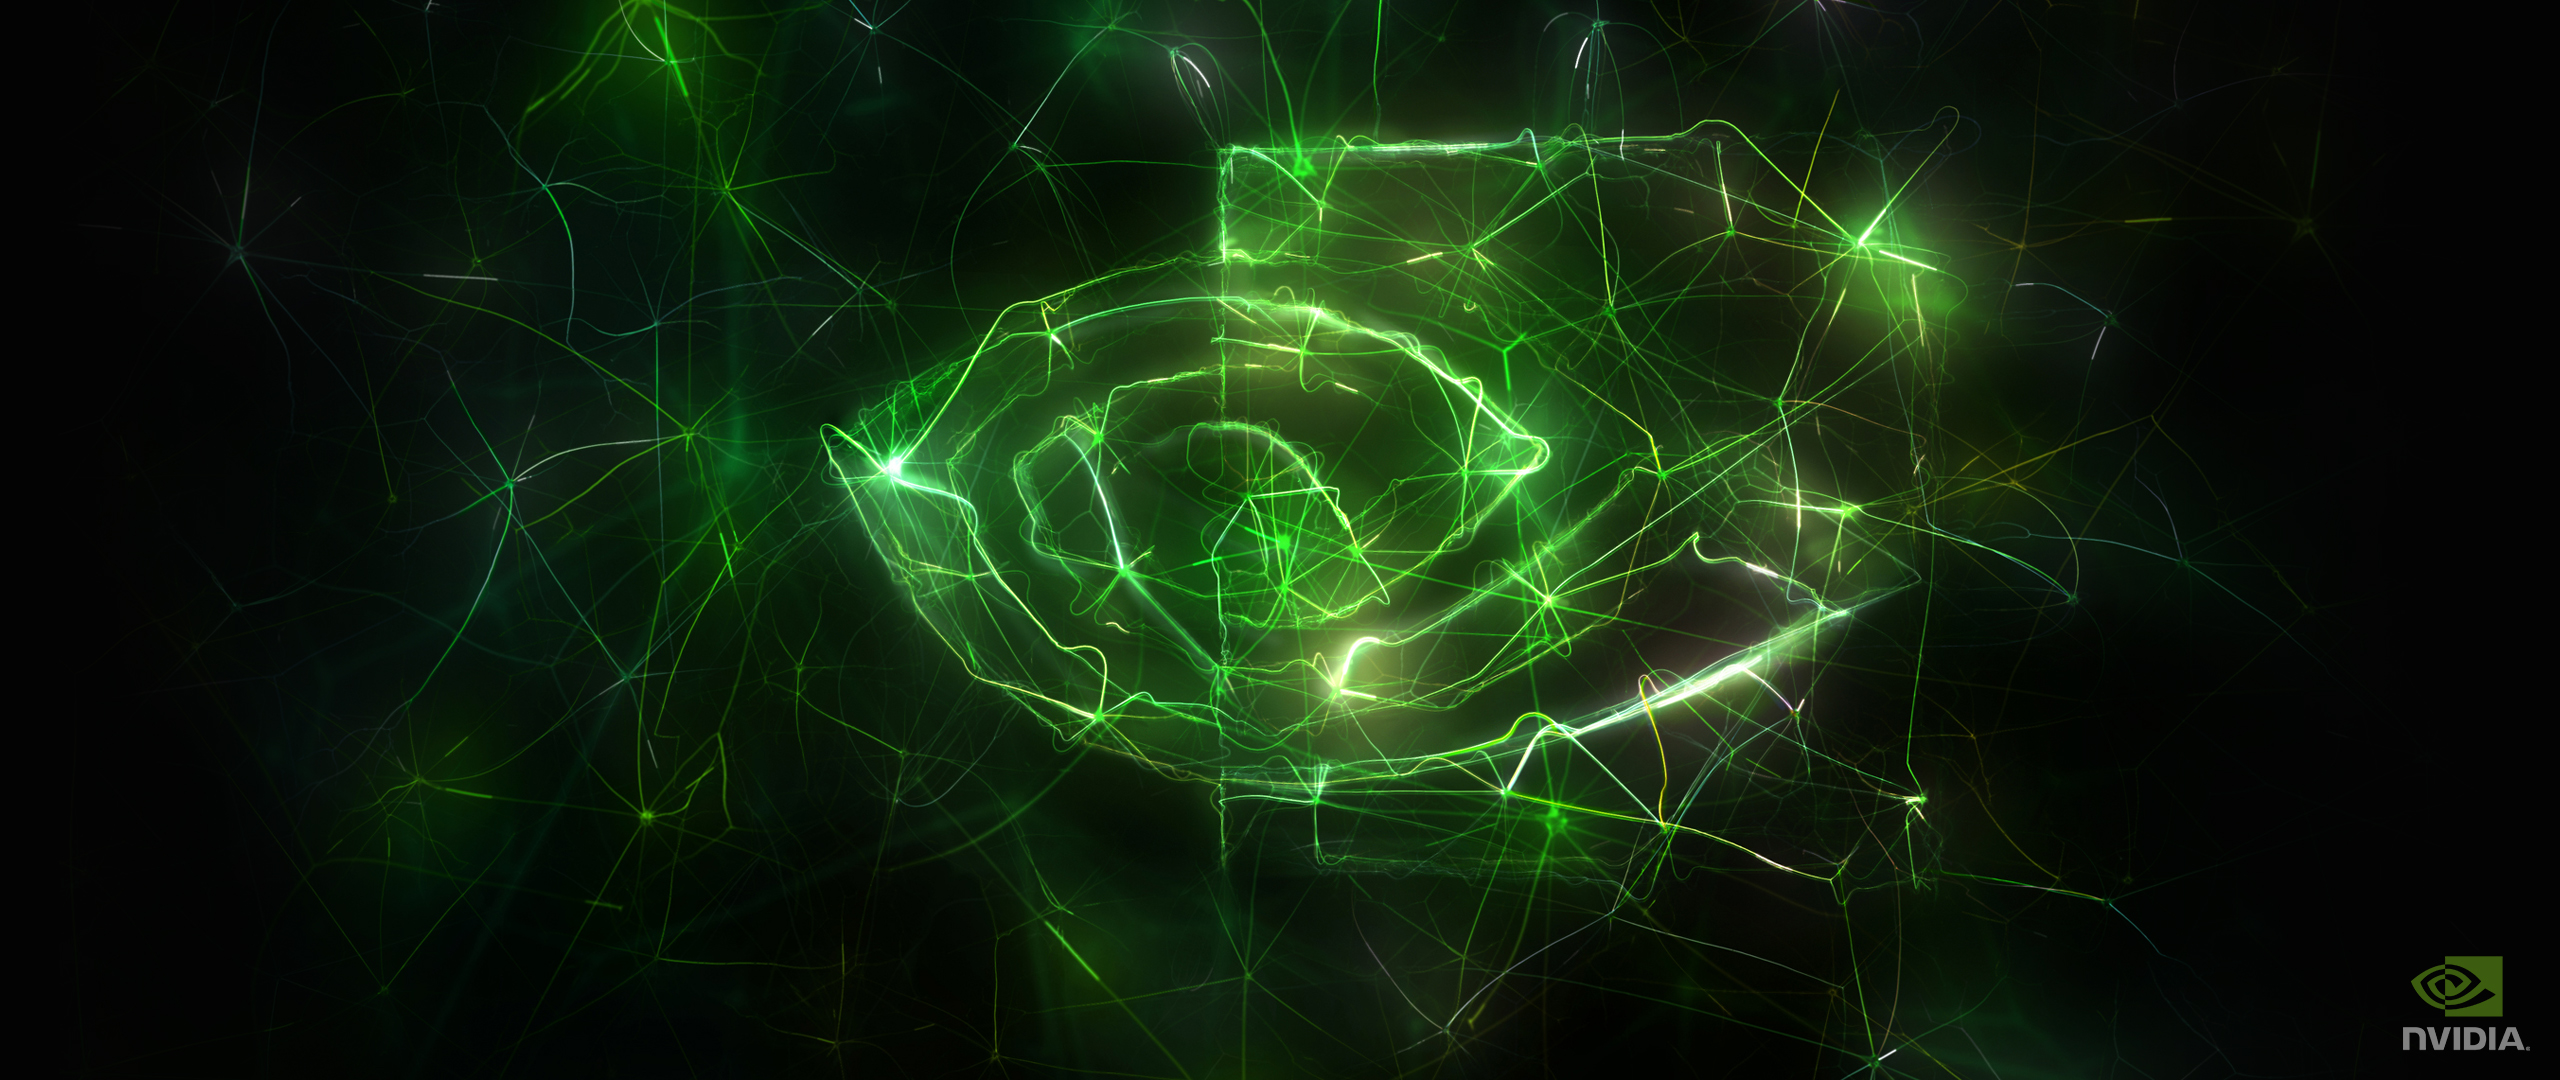 ... | Download Demos, Wallpapers, and Screensavers | NVIDIA Cool Stuff: www.nvidia.com/coolstuff/wallpapers#!/NVIDIA-Synapse